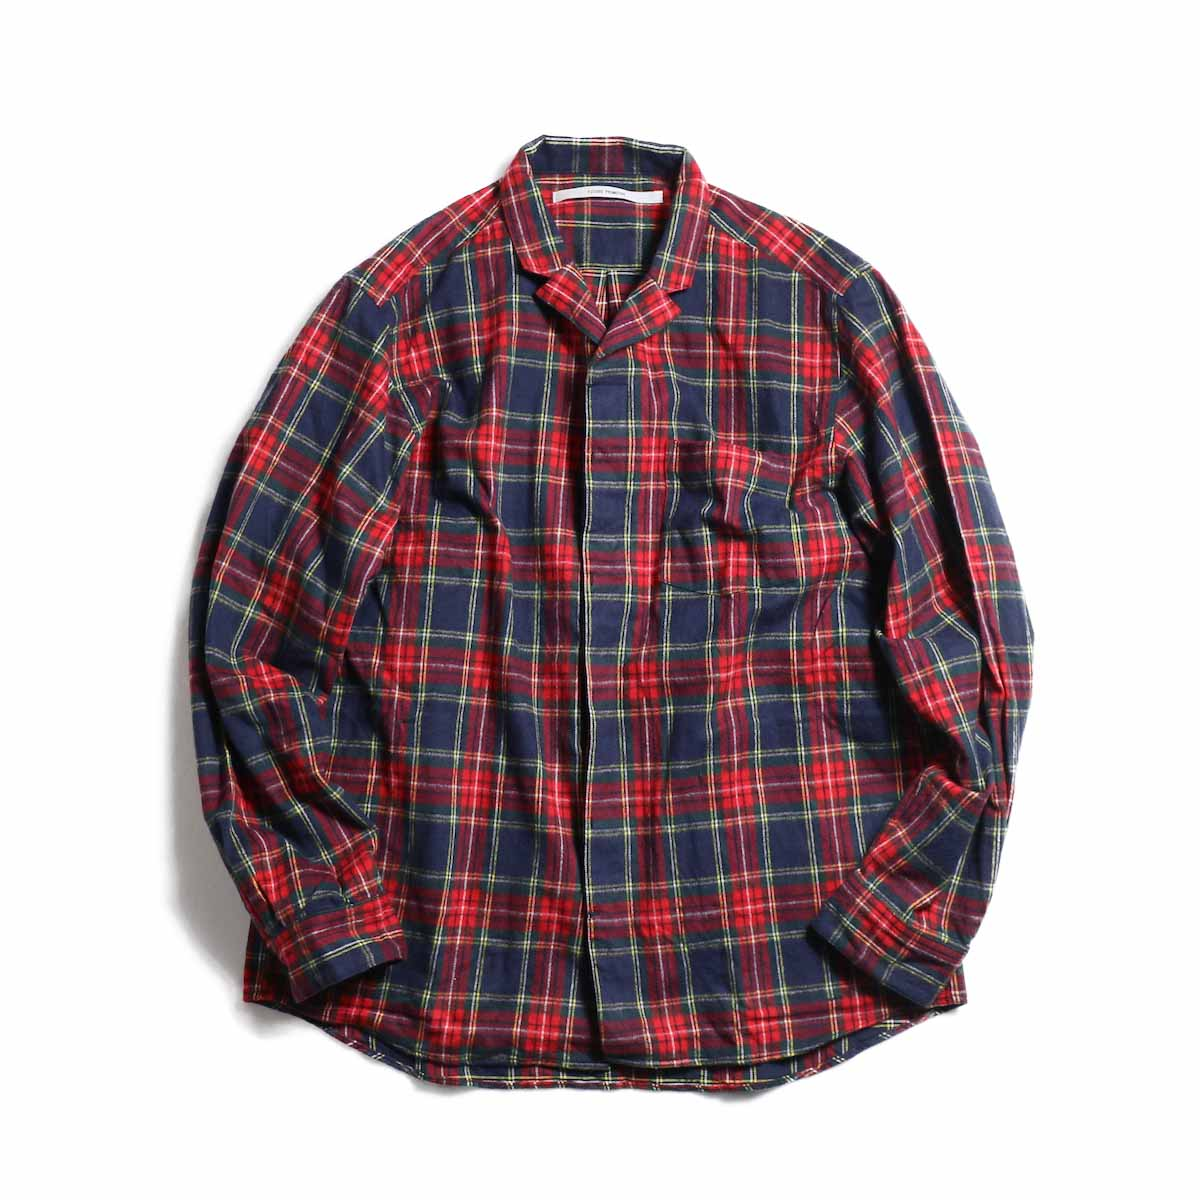 FUTURE PRIMITIVE / FP Notched Shirt(Tartan) -Navy 正面